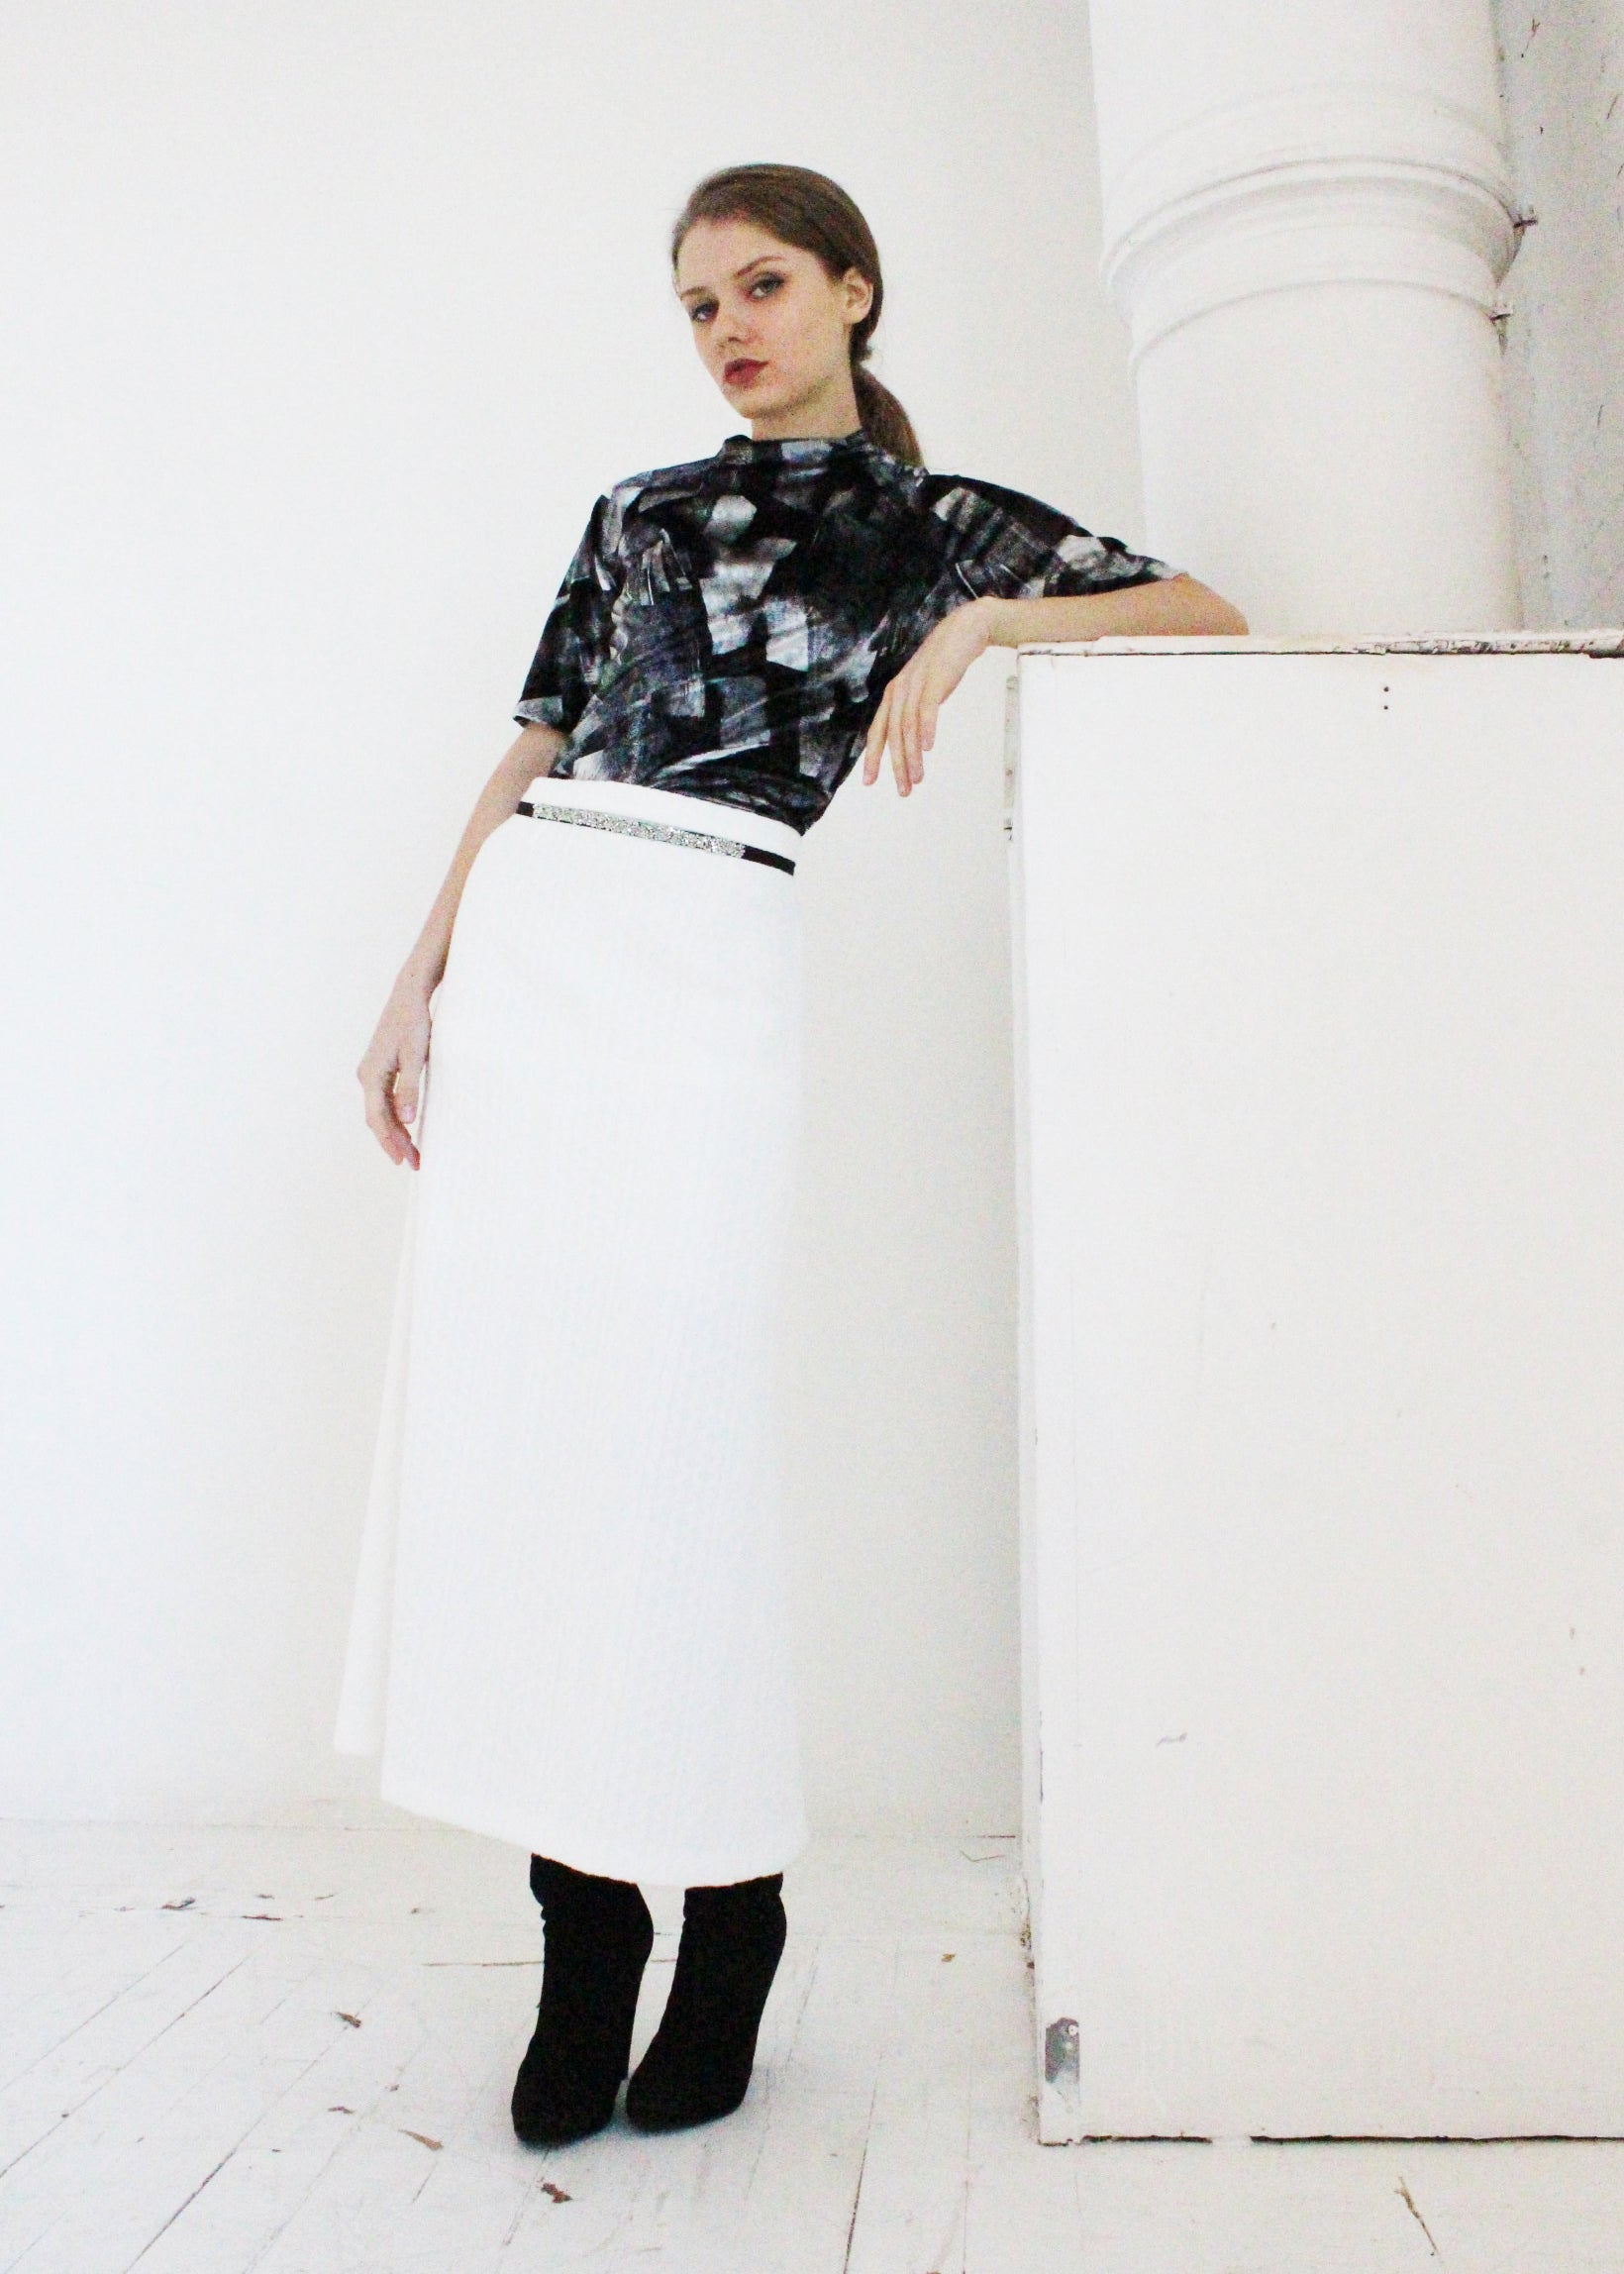 Ying Cai _ AW 21 Look 8 - 2